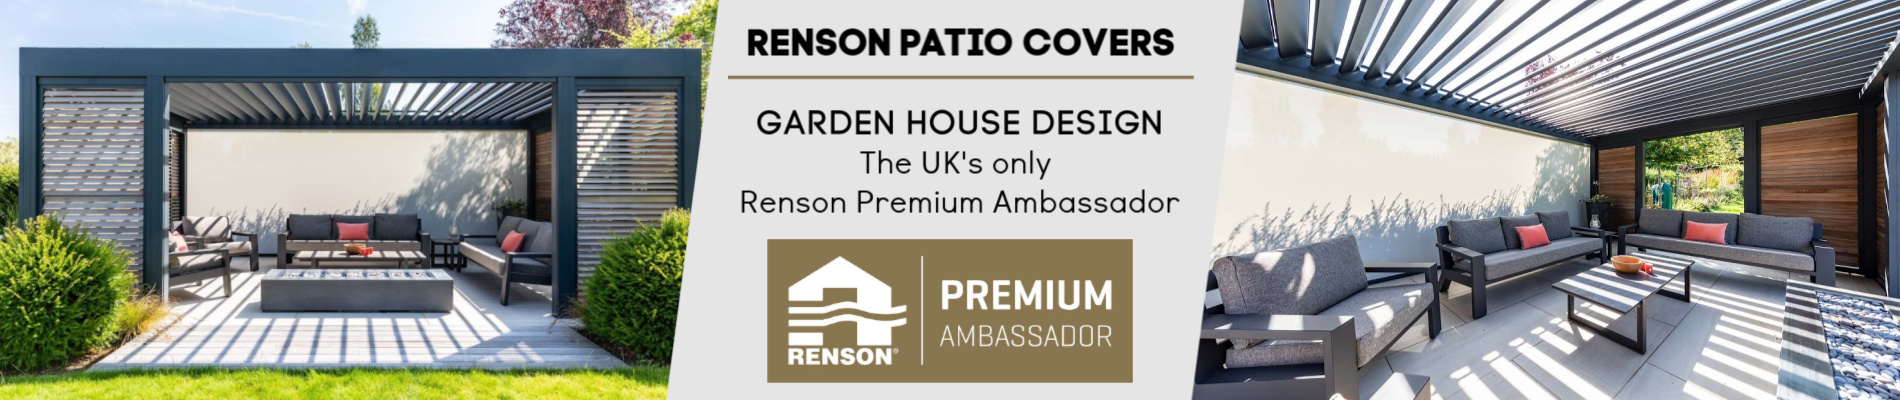 Link to page Renson Canopy Premium Ambassador